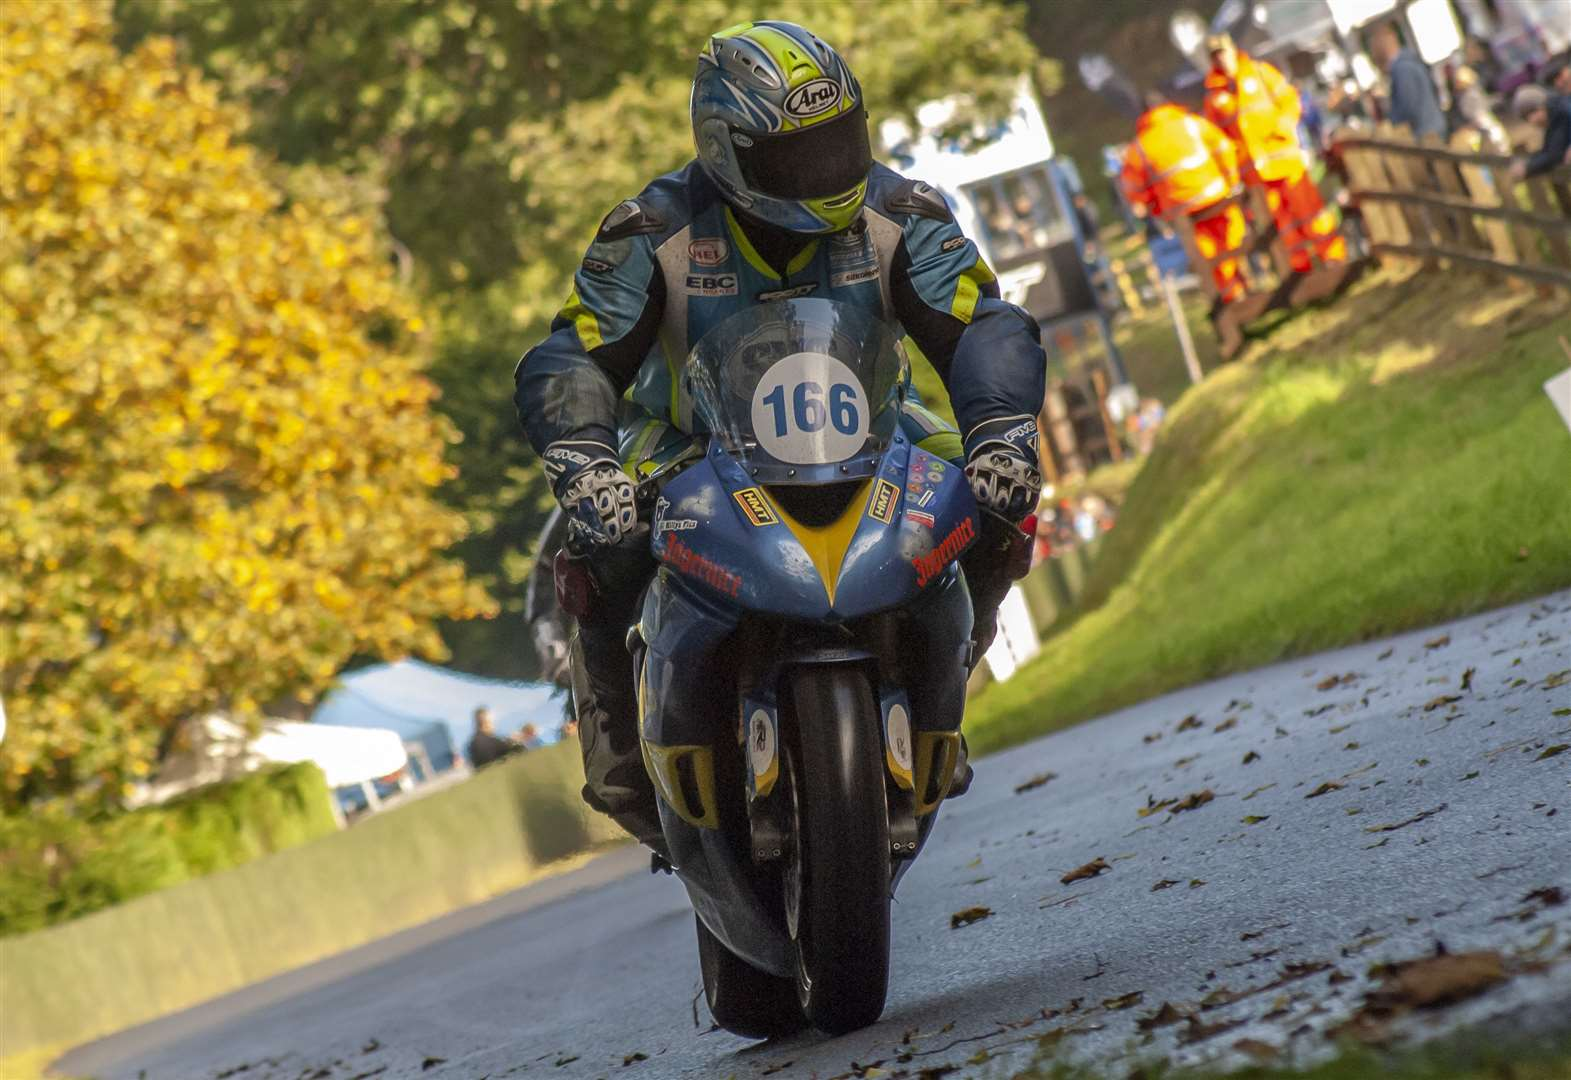 MOTORCYCLING: Return to Oliver's Mount for Slater